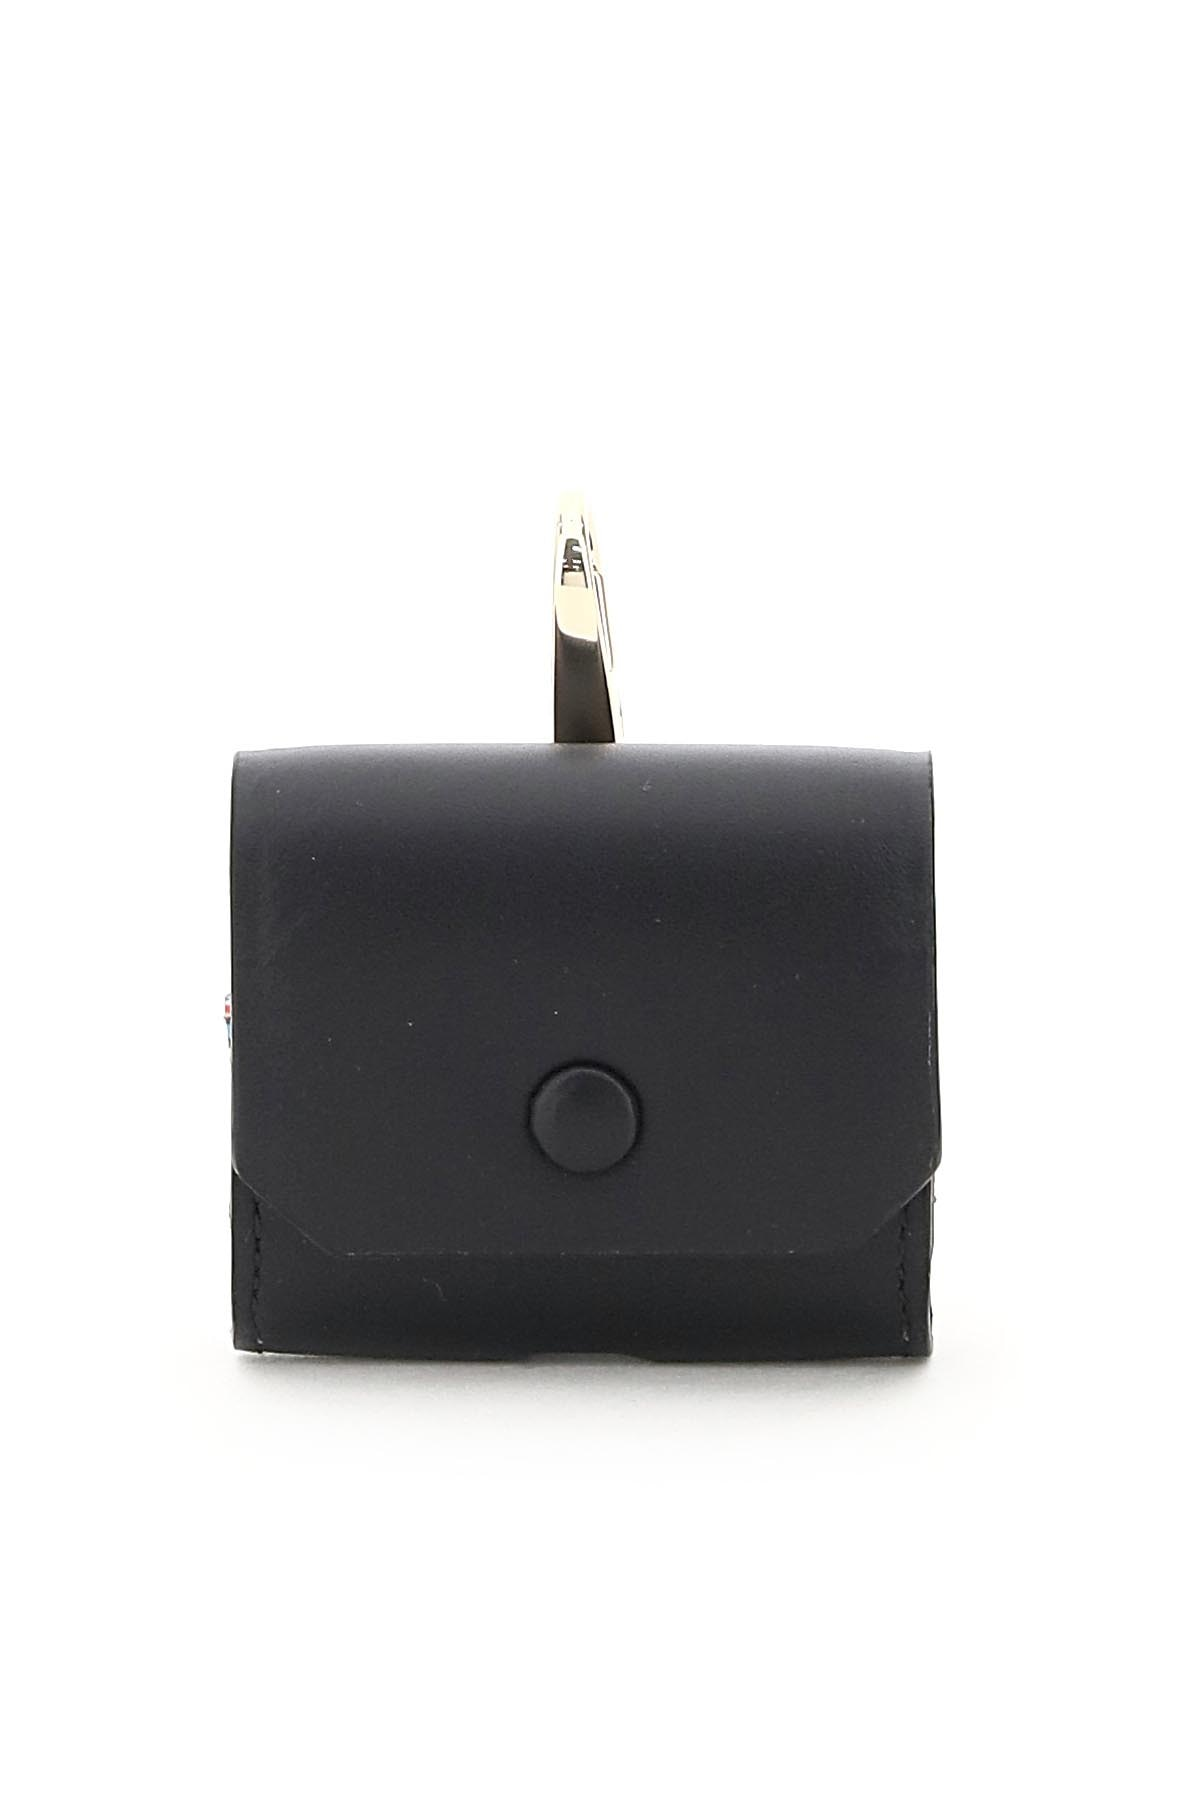 PAUL SMITH AIRPODS CASE OS Black Leather